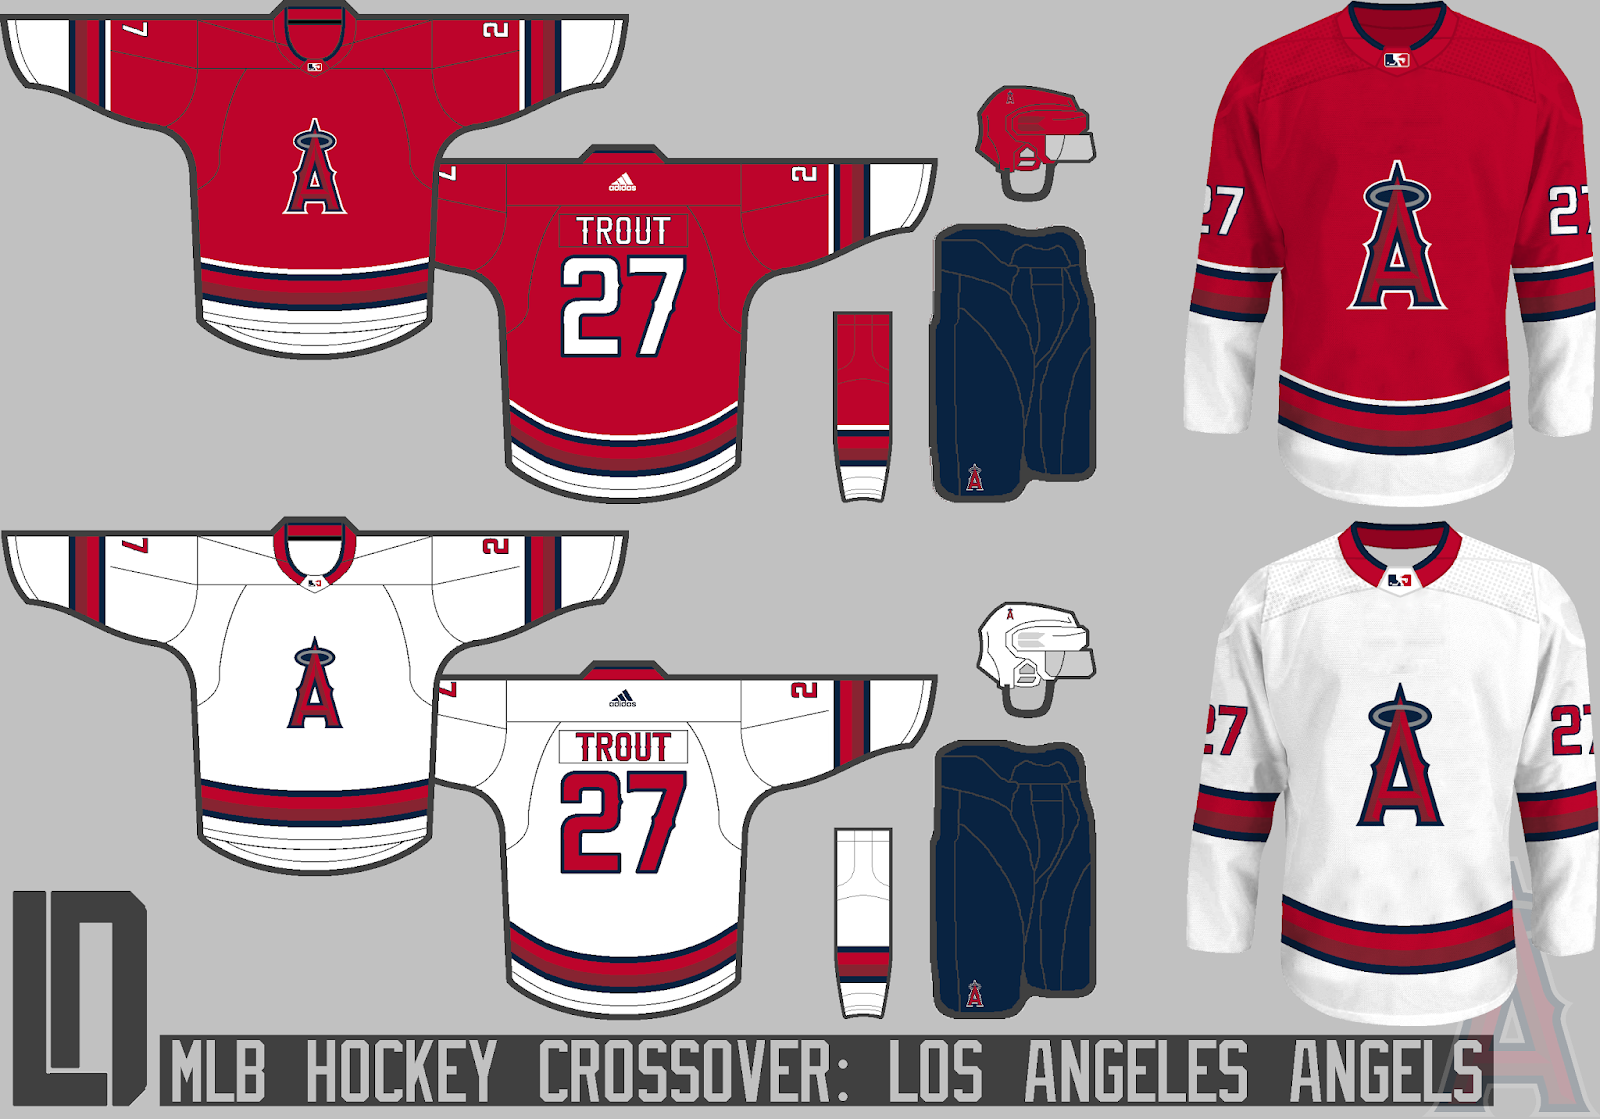 Los+Angeles+Angels+Concept.png